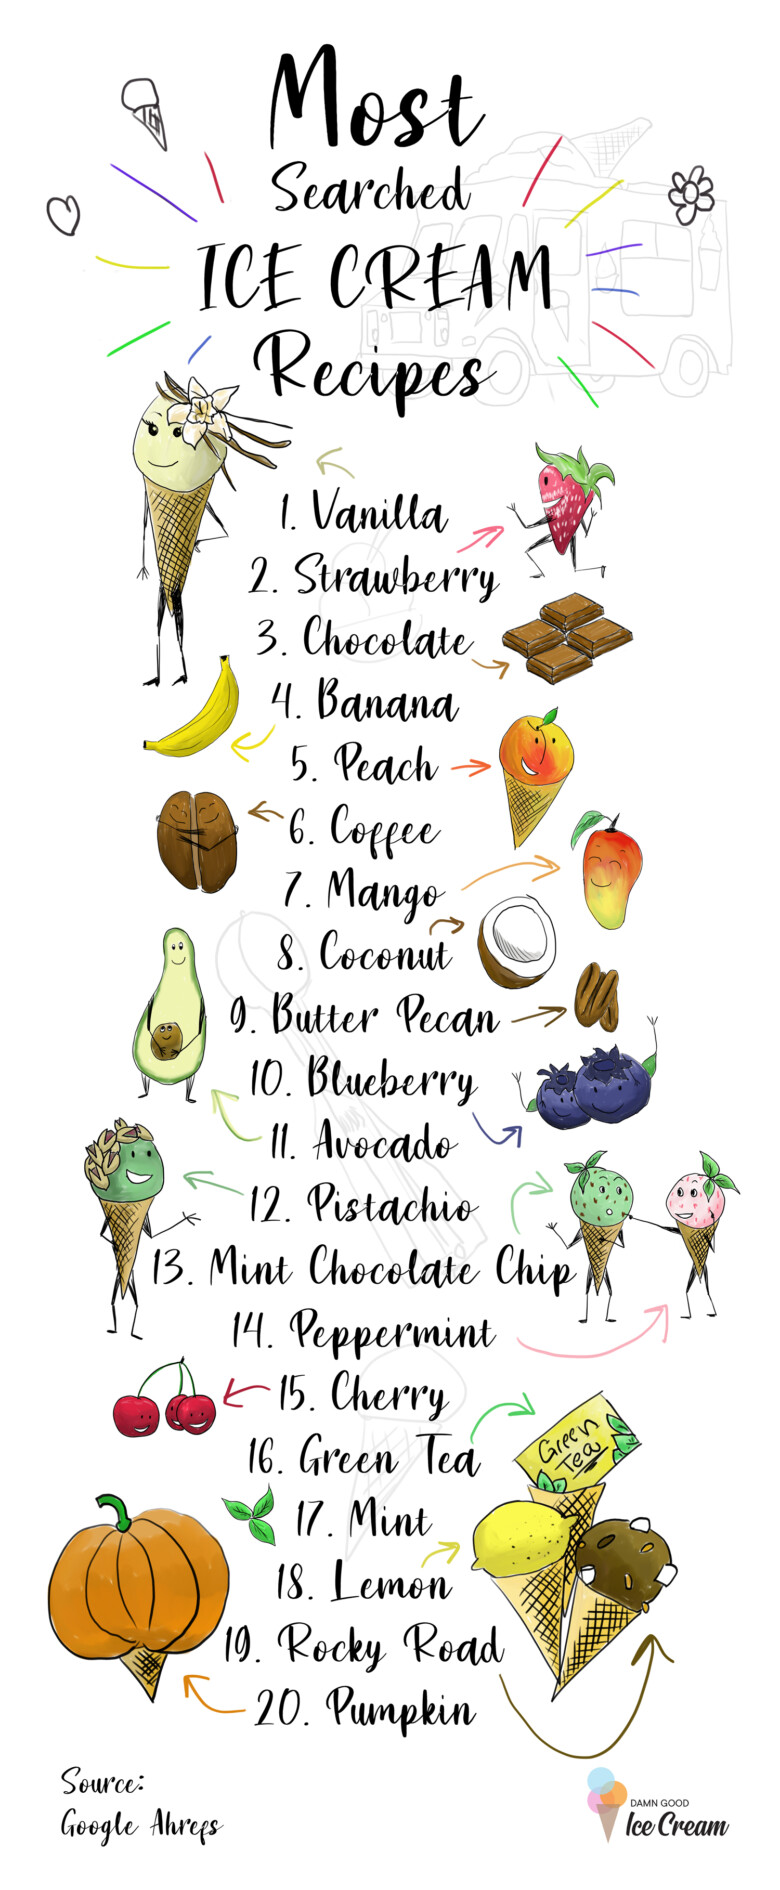 Most Searched Ice Cream Recipes